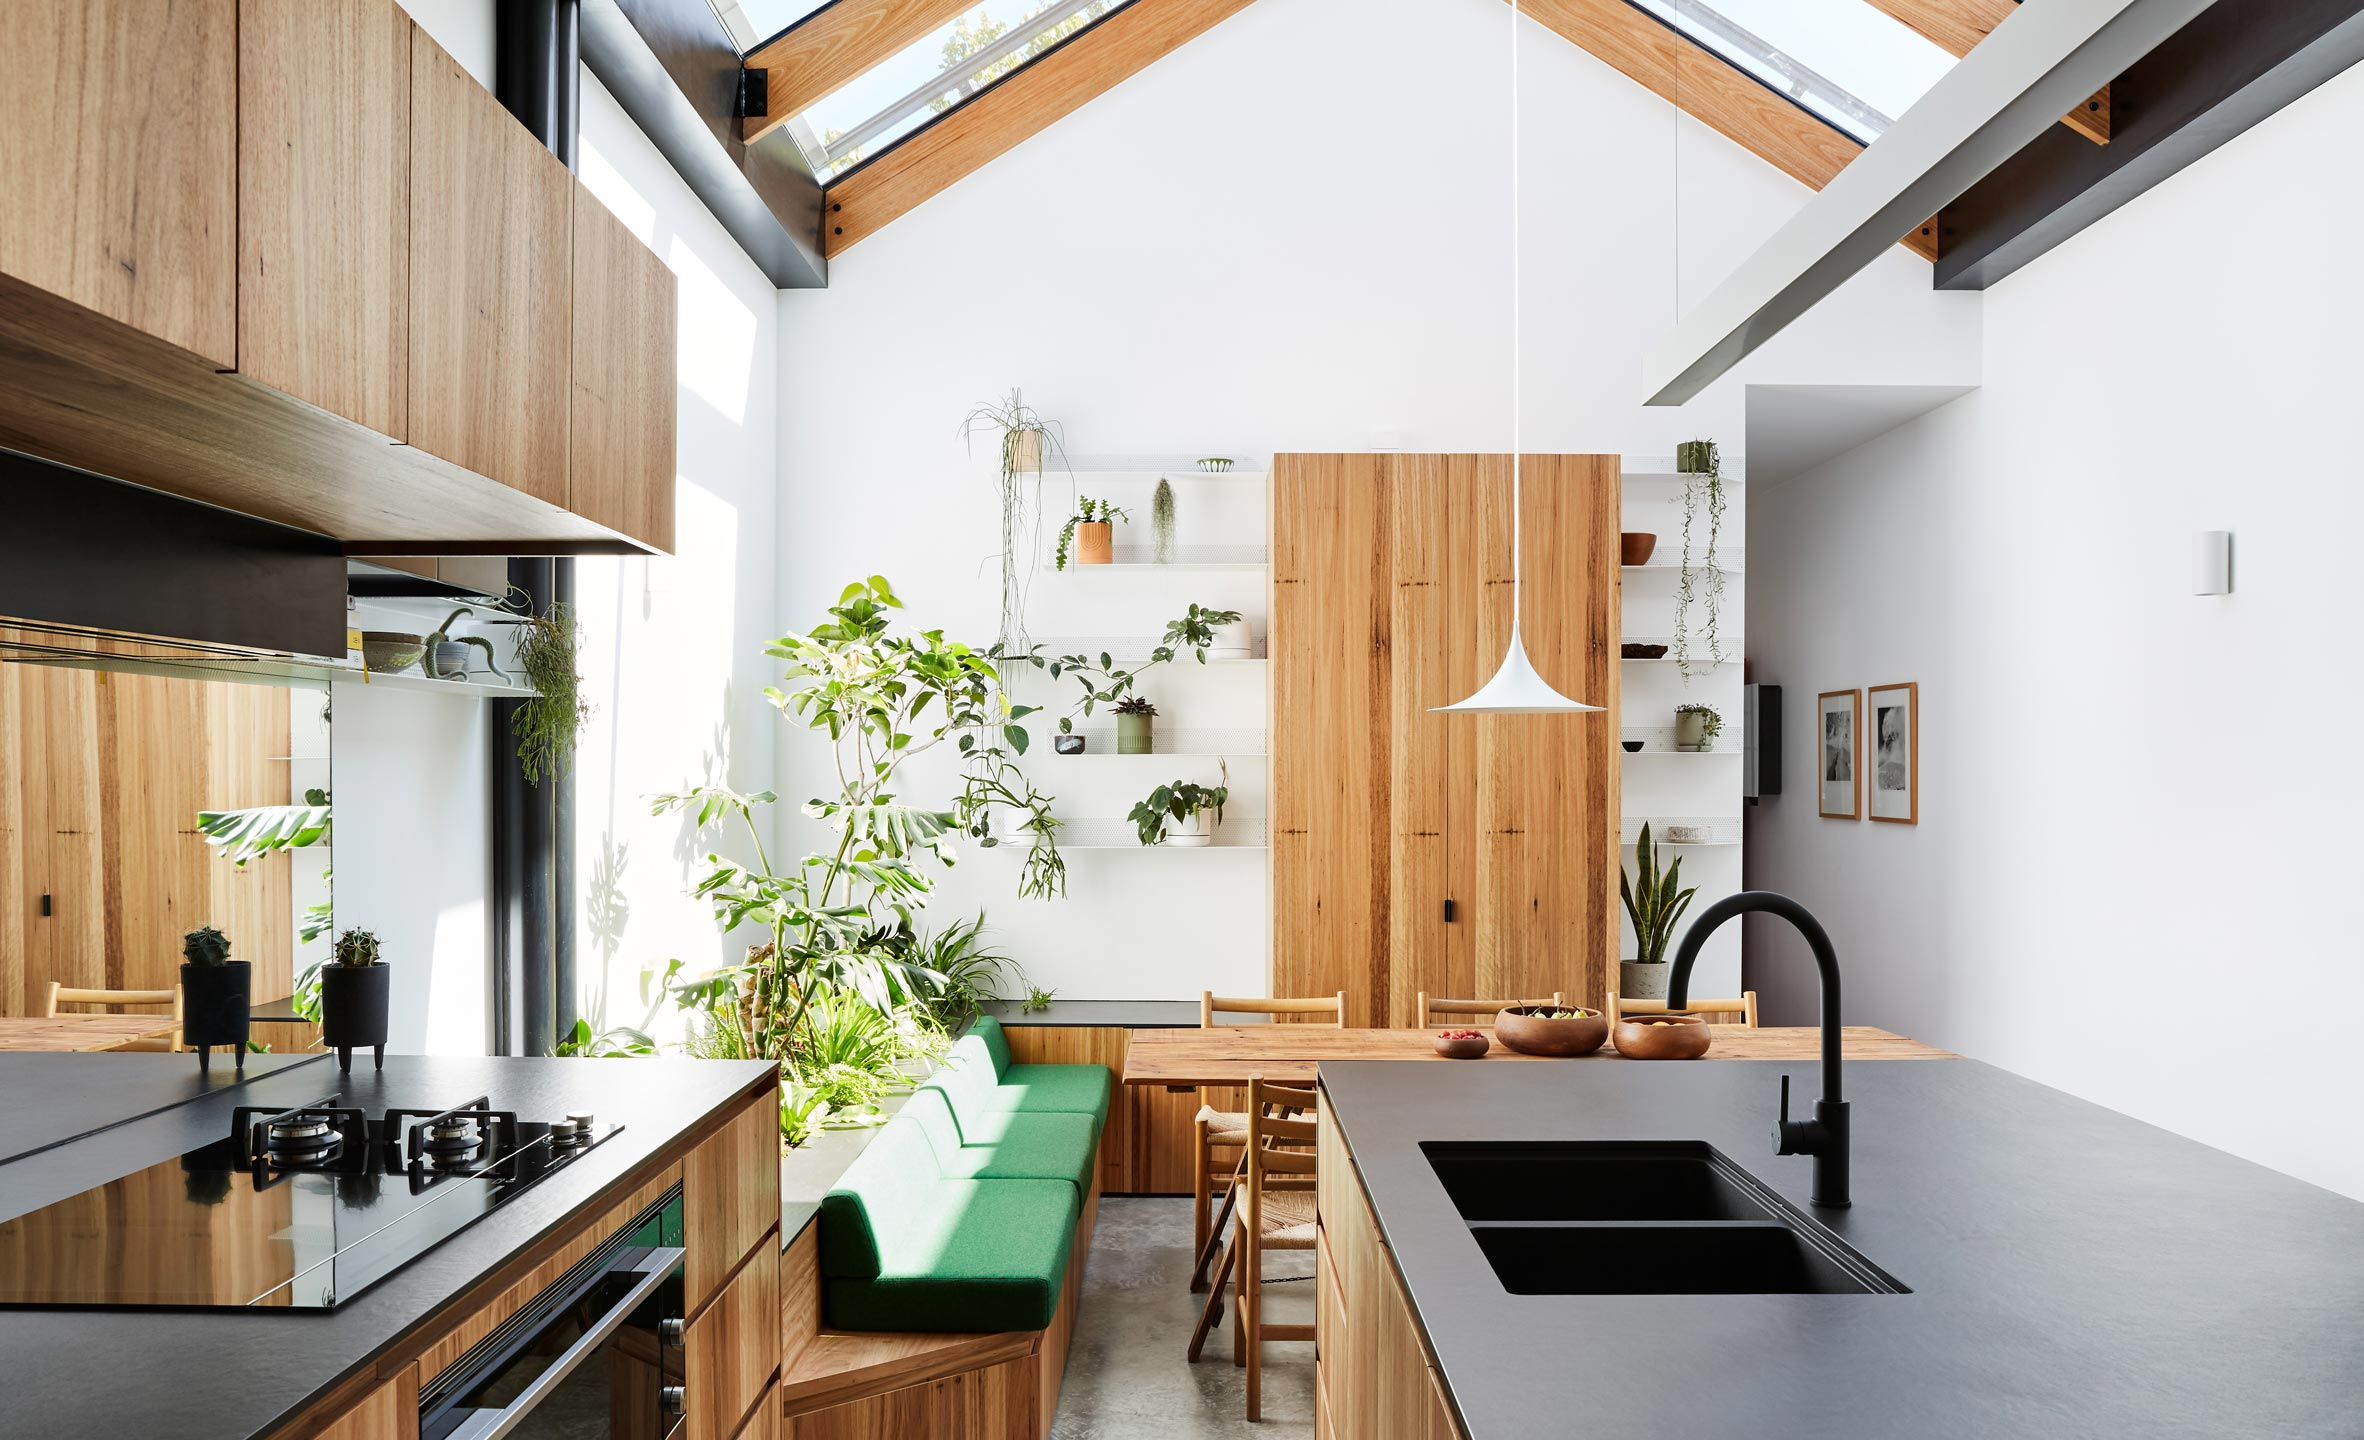 Efficient kitchen remodel ideas on a budget